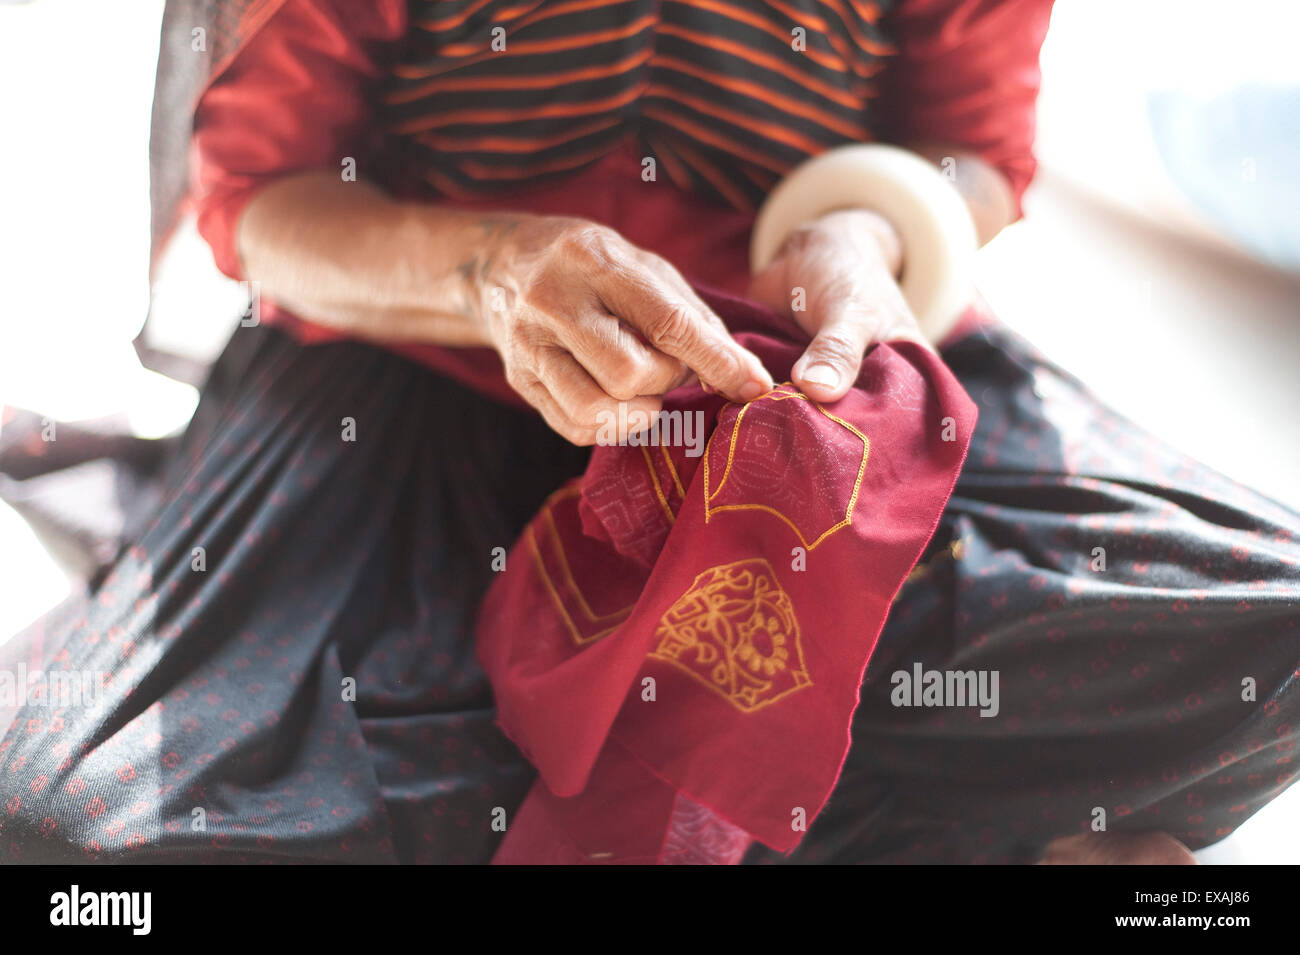 Aahir tribeswoman embroidering intricate traditional patterns in very fine chain stitch, Bhuj district, Gujarat, - Stock Image